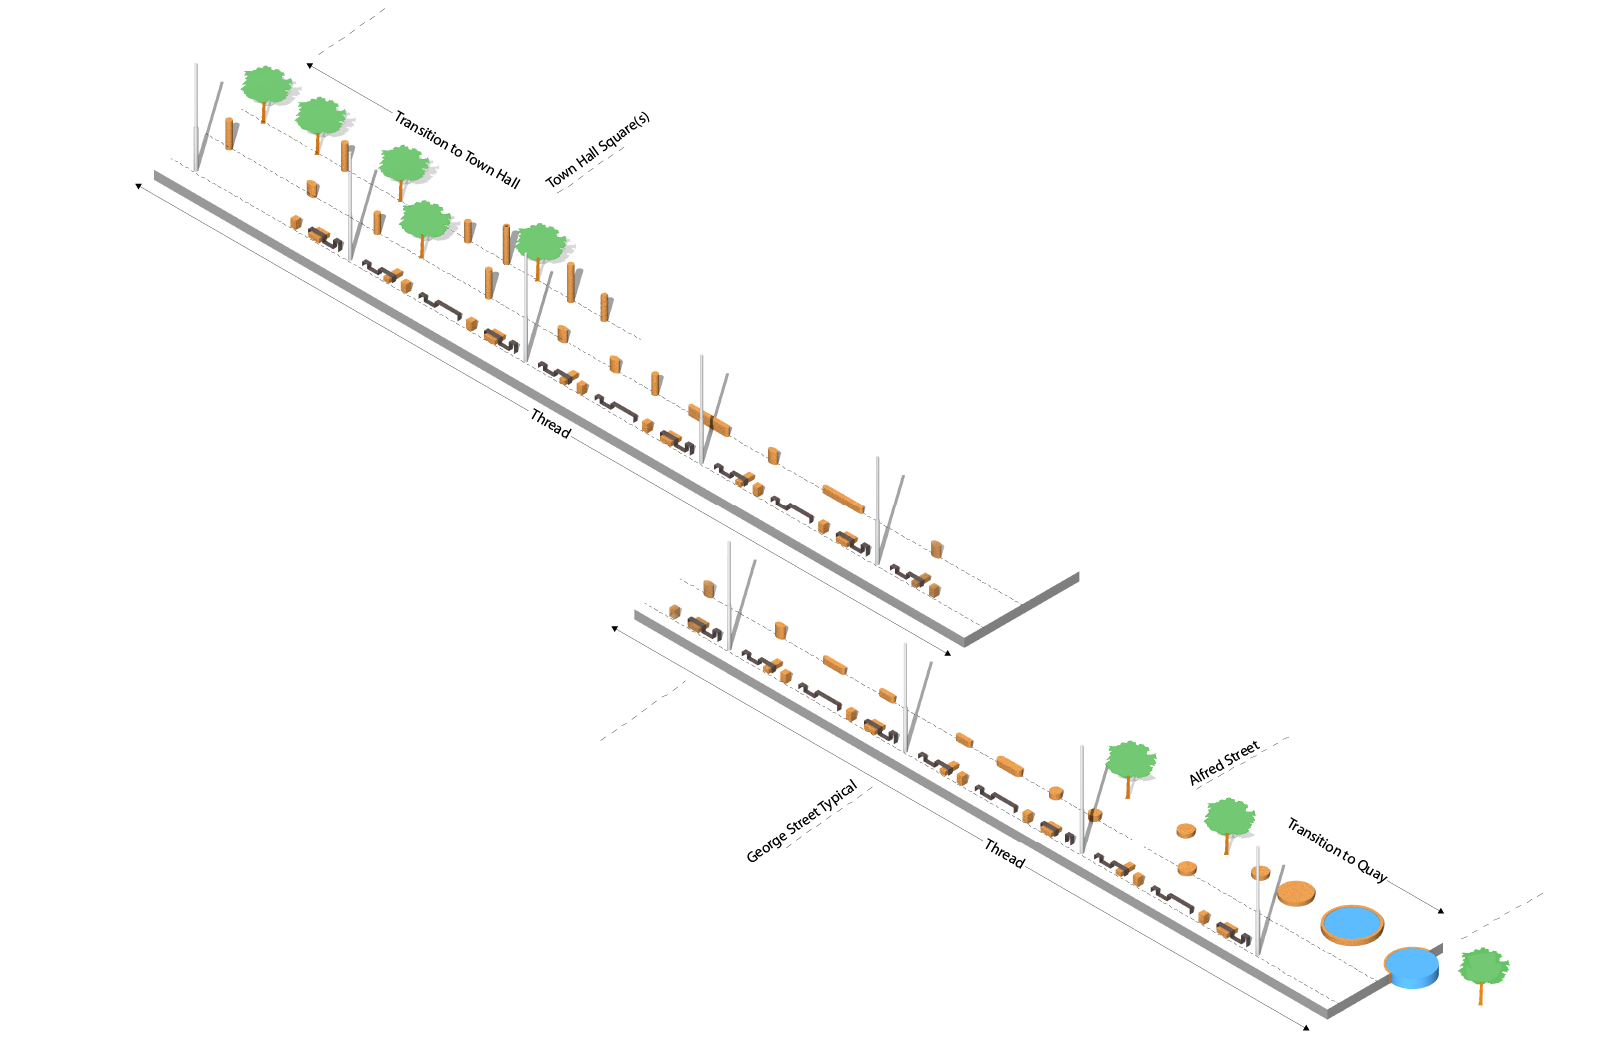 Crowded Places Protection. An urban design concept in Sydney by McGregor Westlake Architecture.